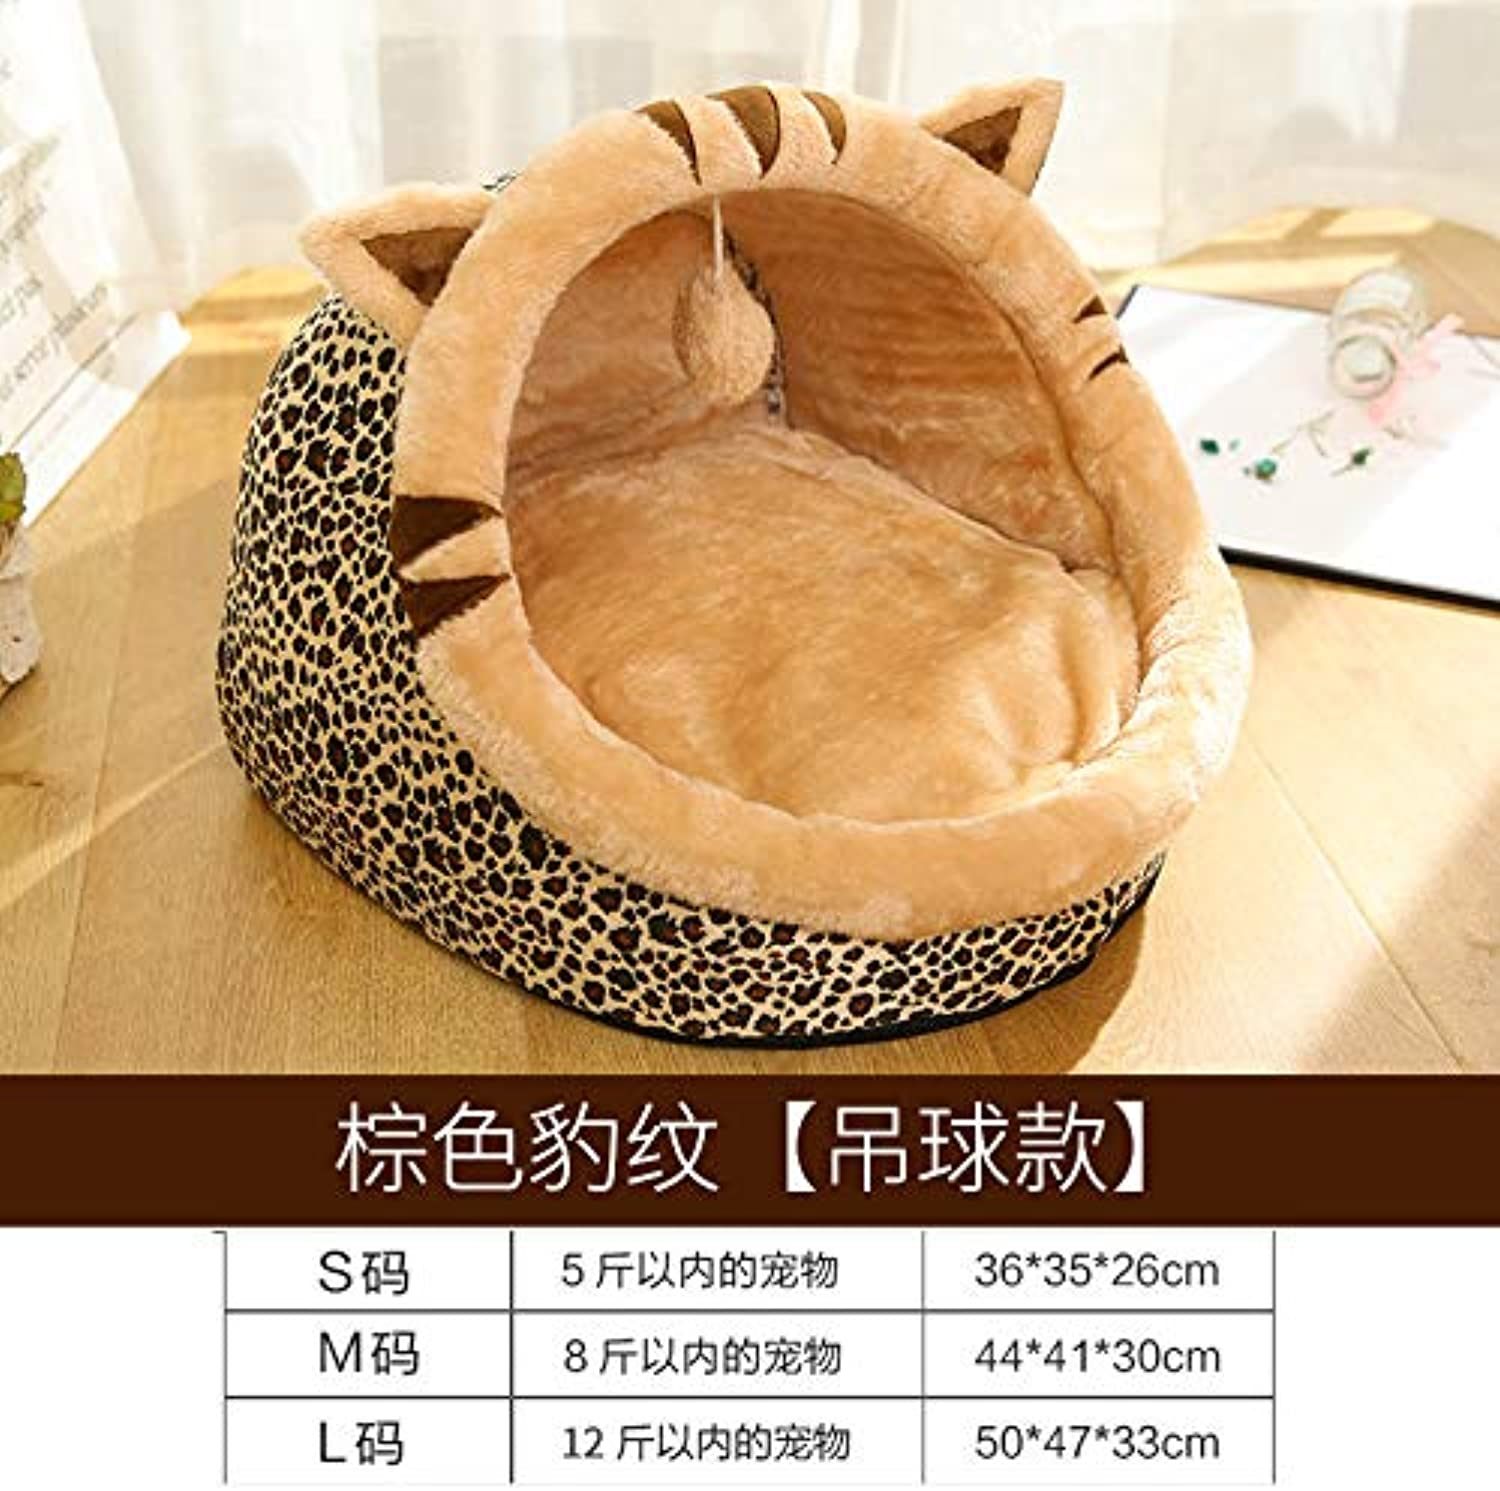 Kennel cat litter winter four seasons general small and medium dogs dog bed pet bed removable and washable winter di, brown leopard, S